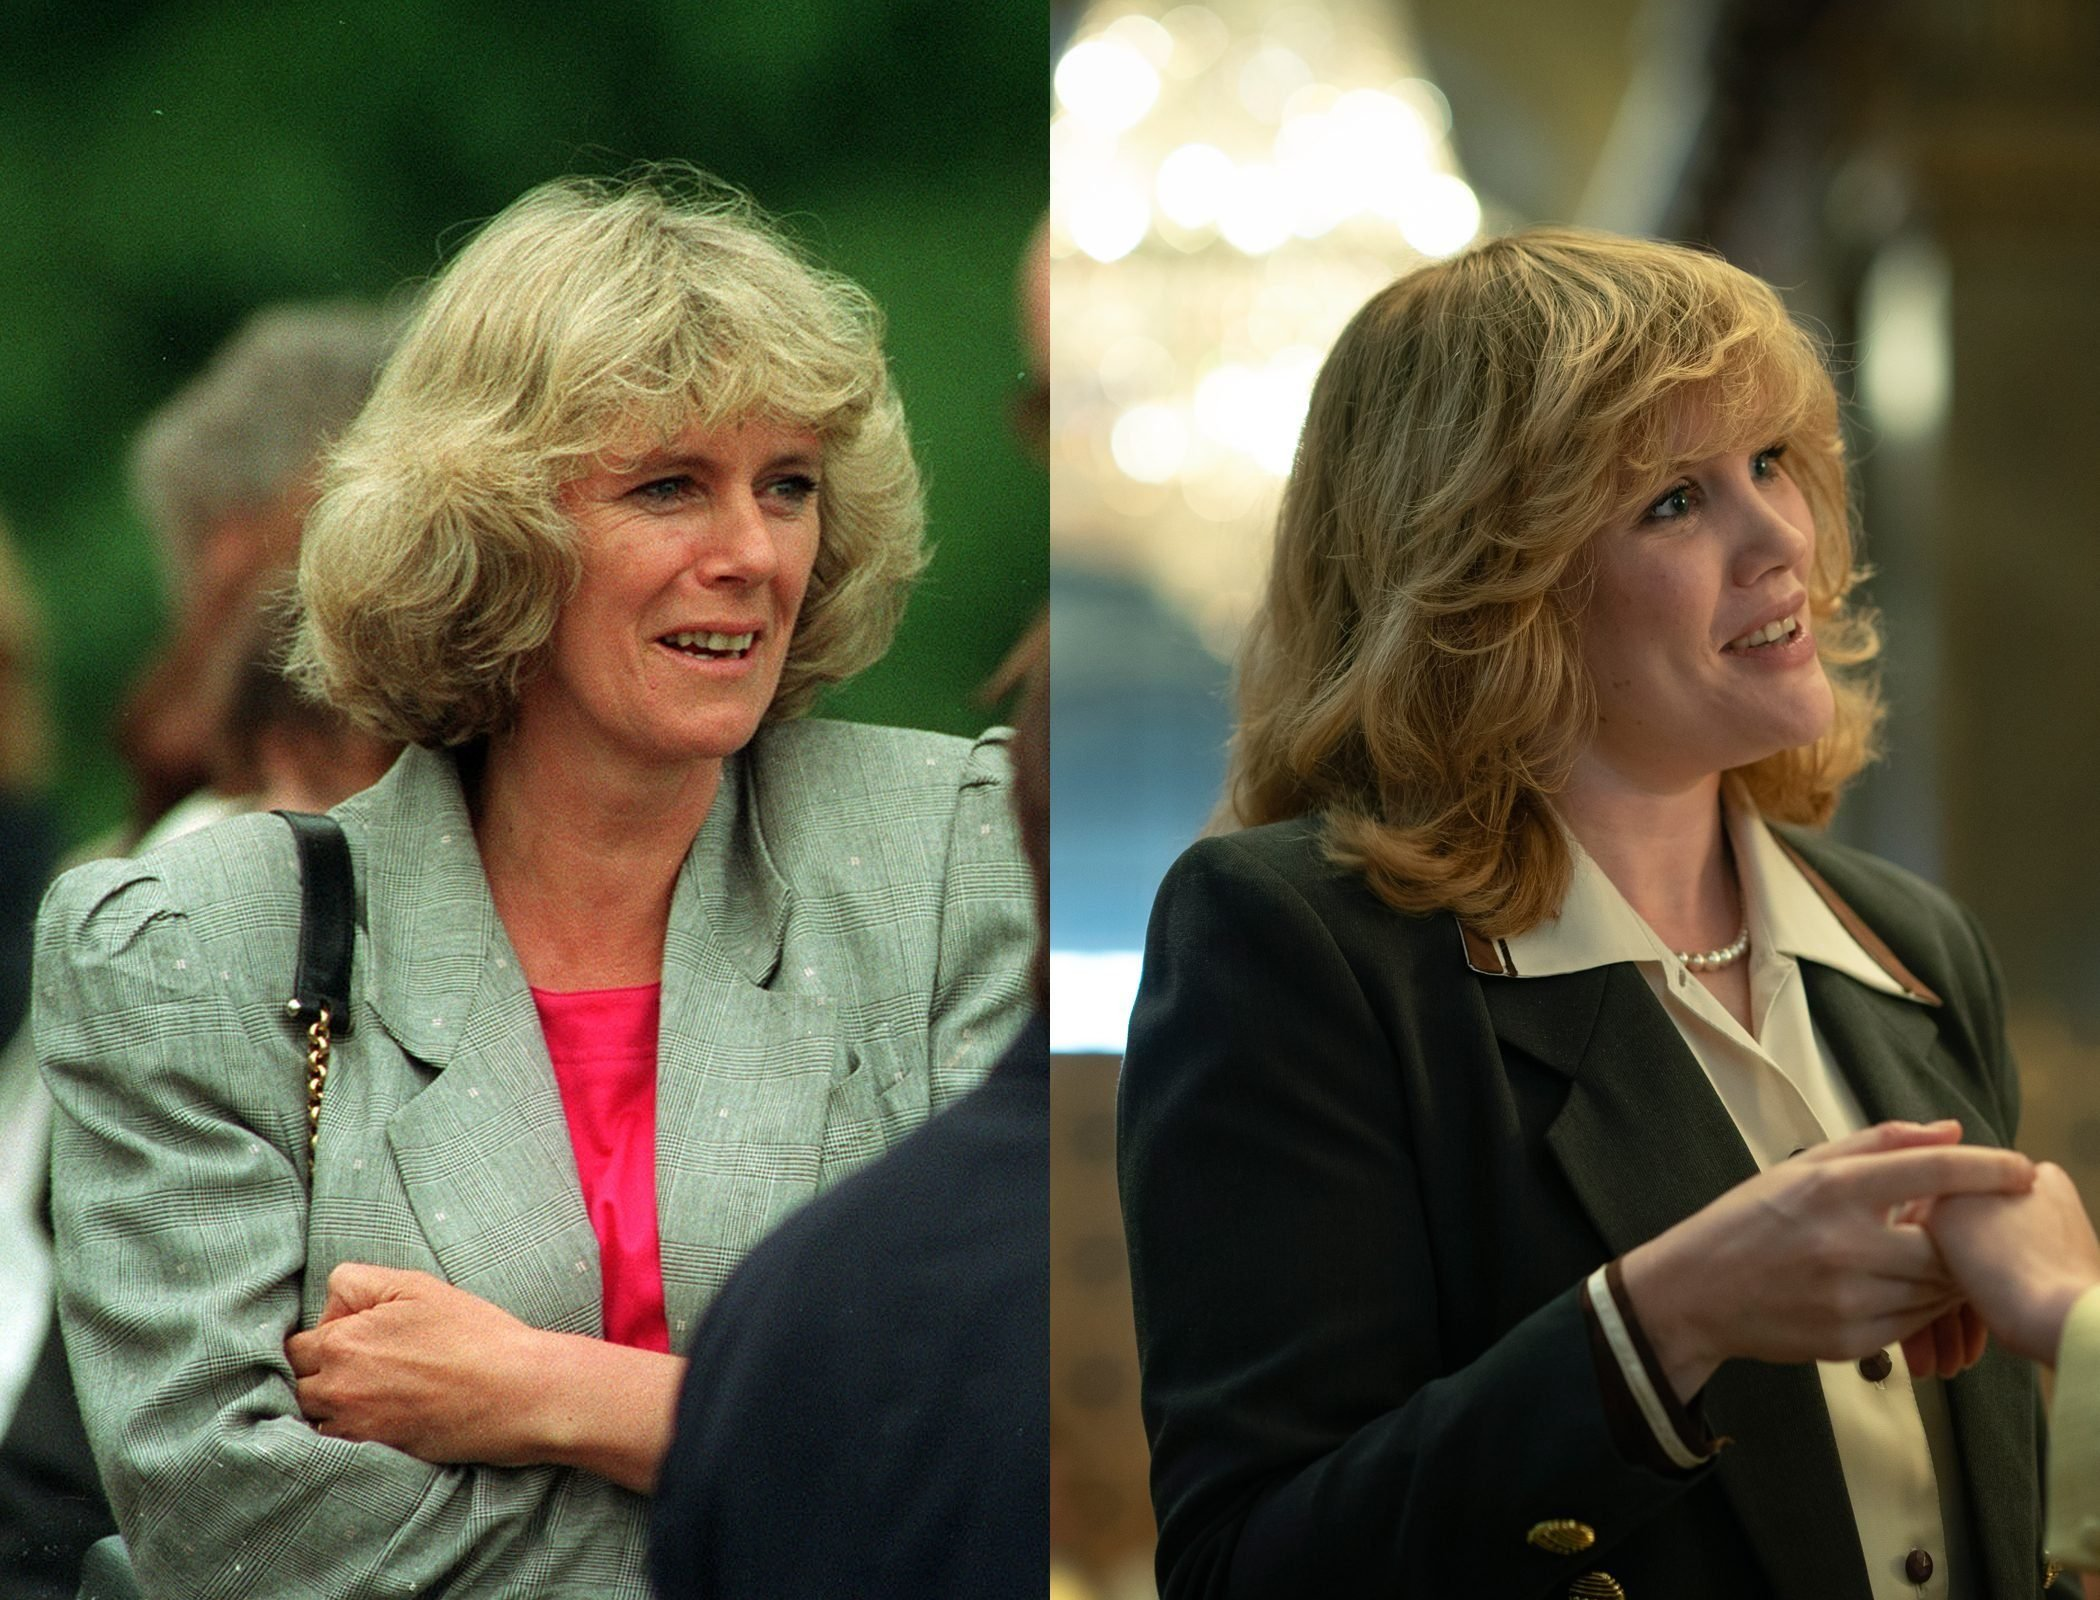 Camilla Shand Parker-Bowles, as played by Emerald Fennell